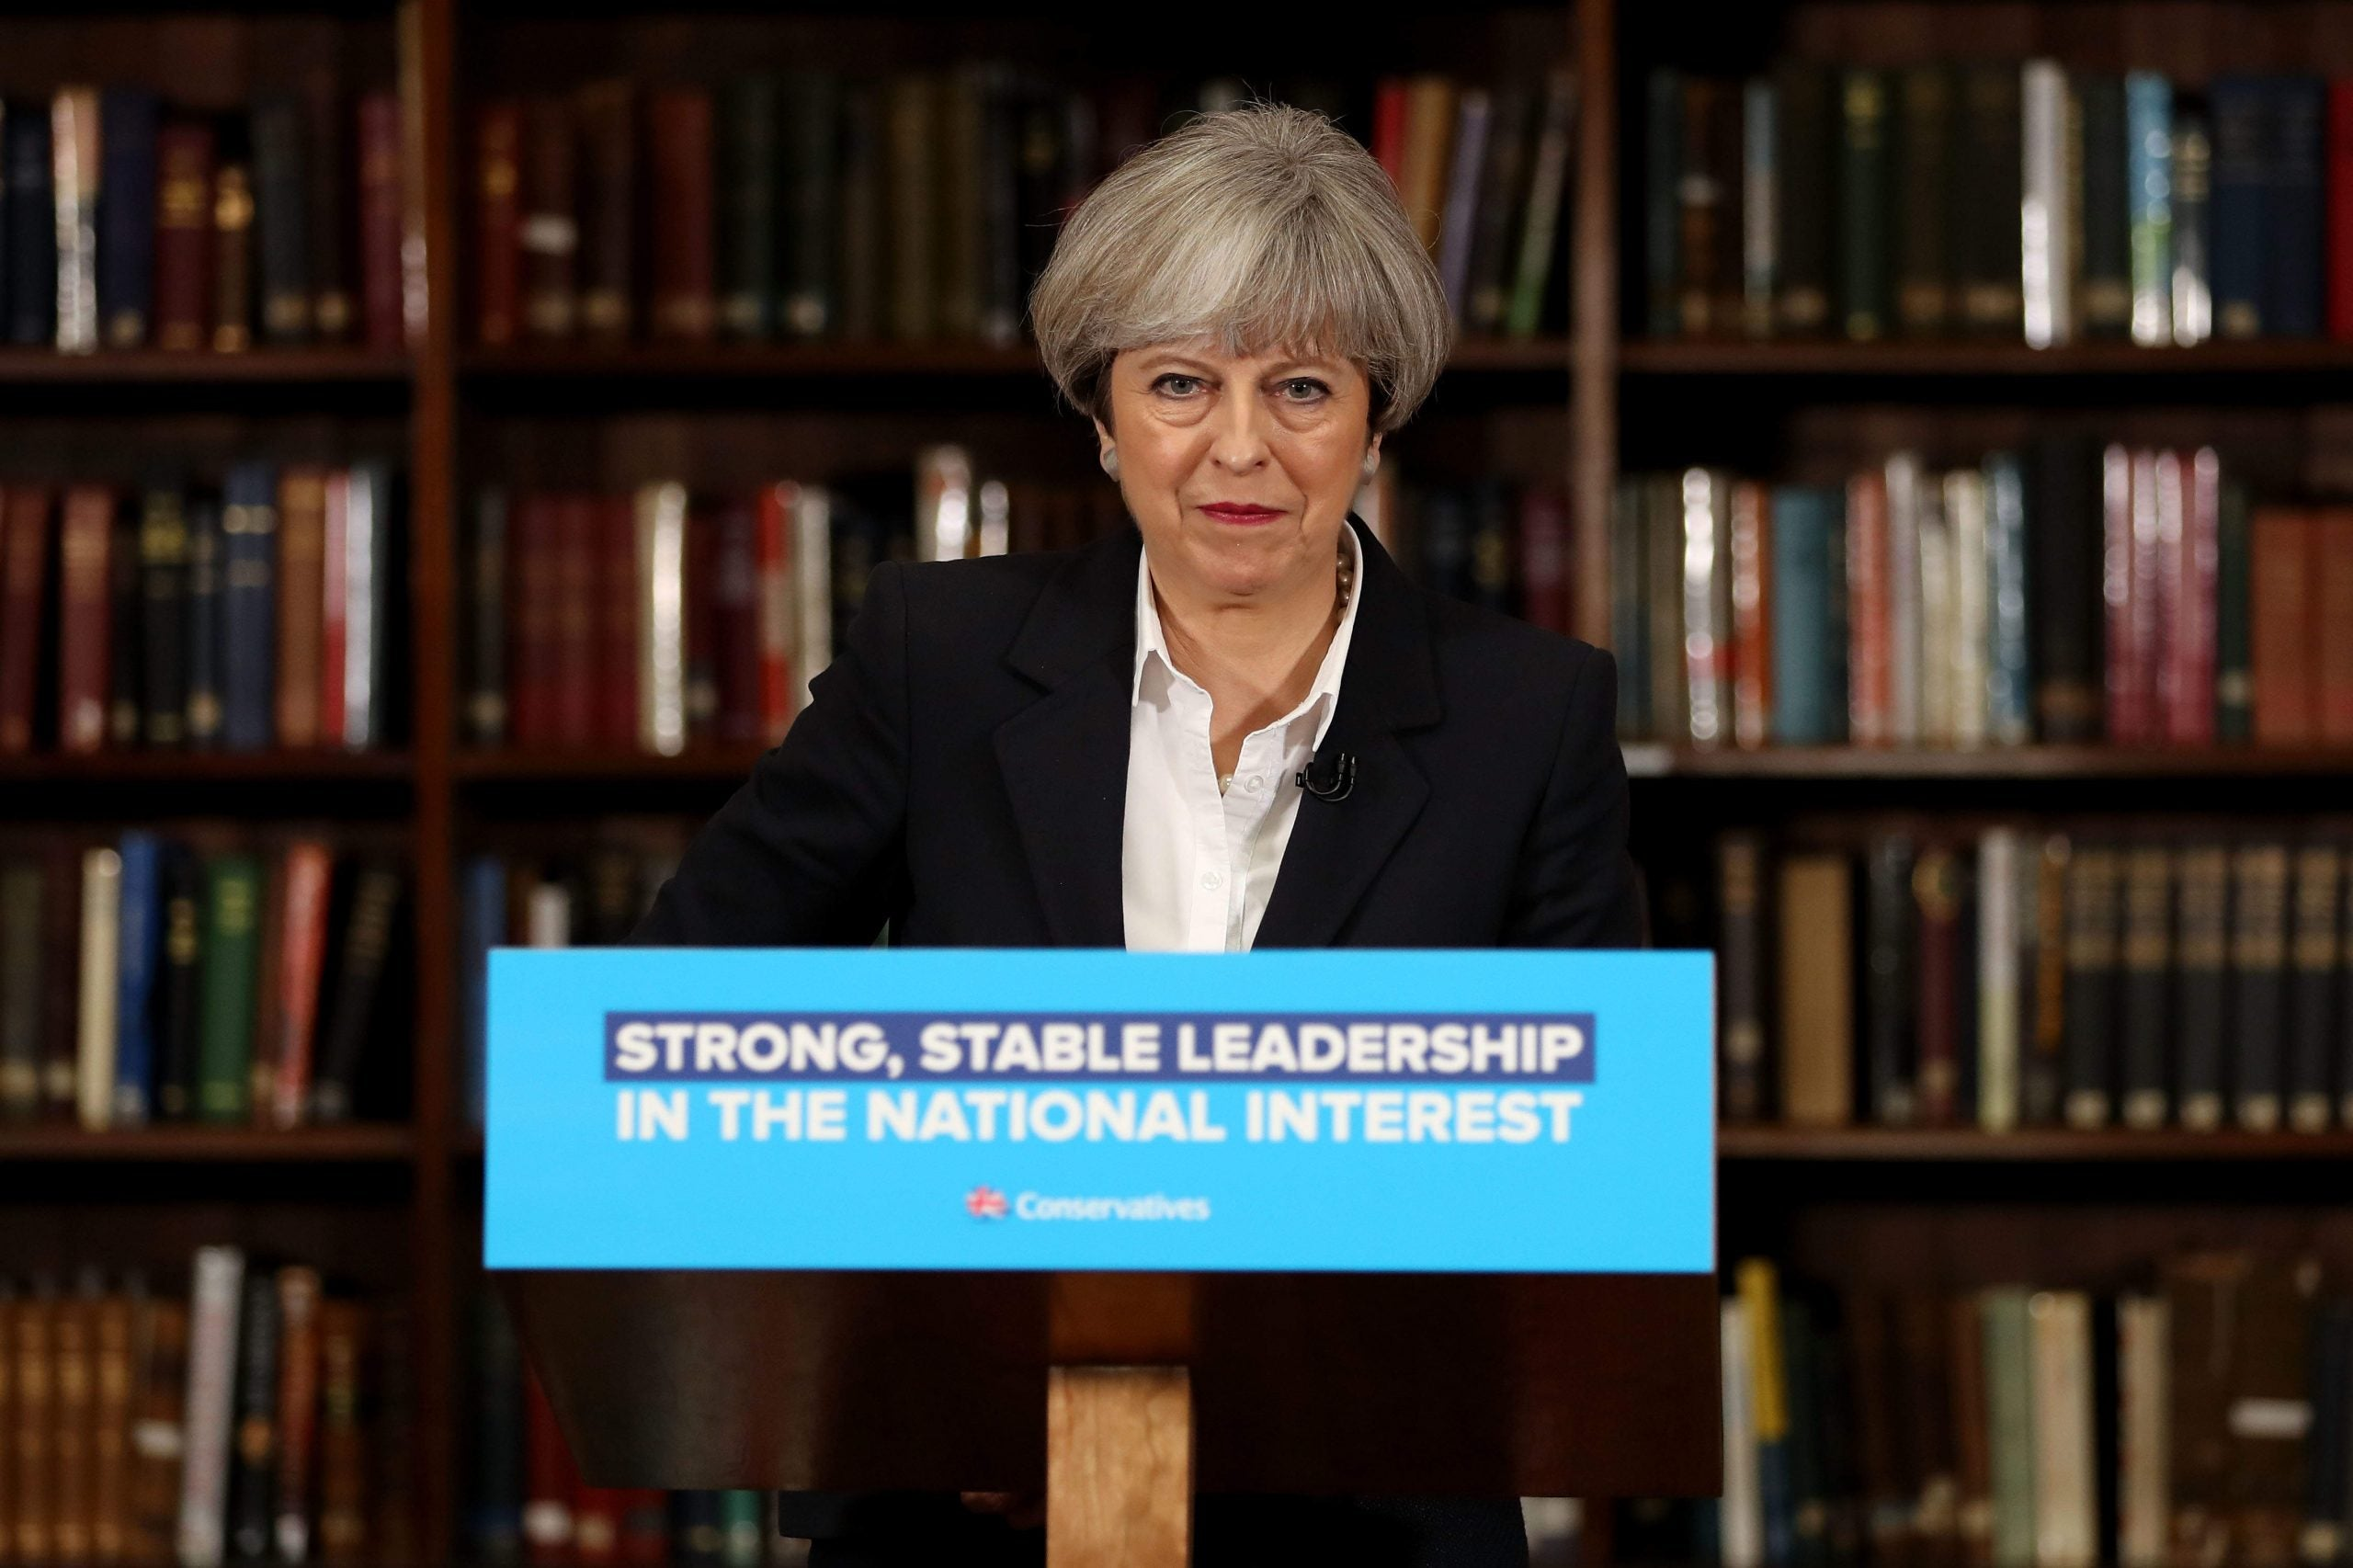 The 3 big strategic mistakes the Conservatives made in the election campaign